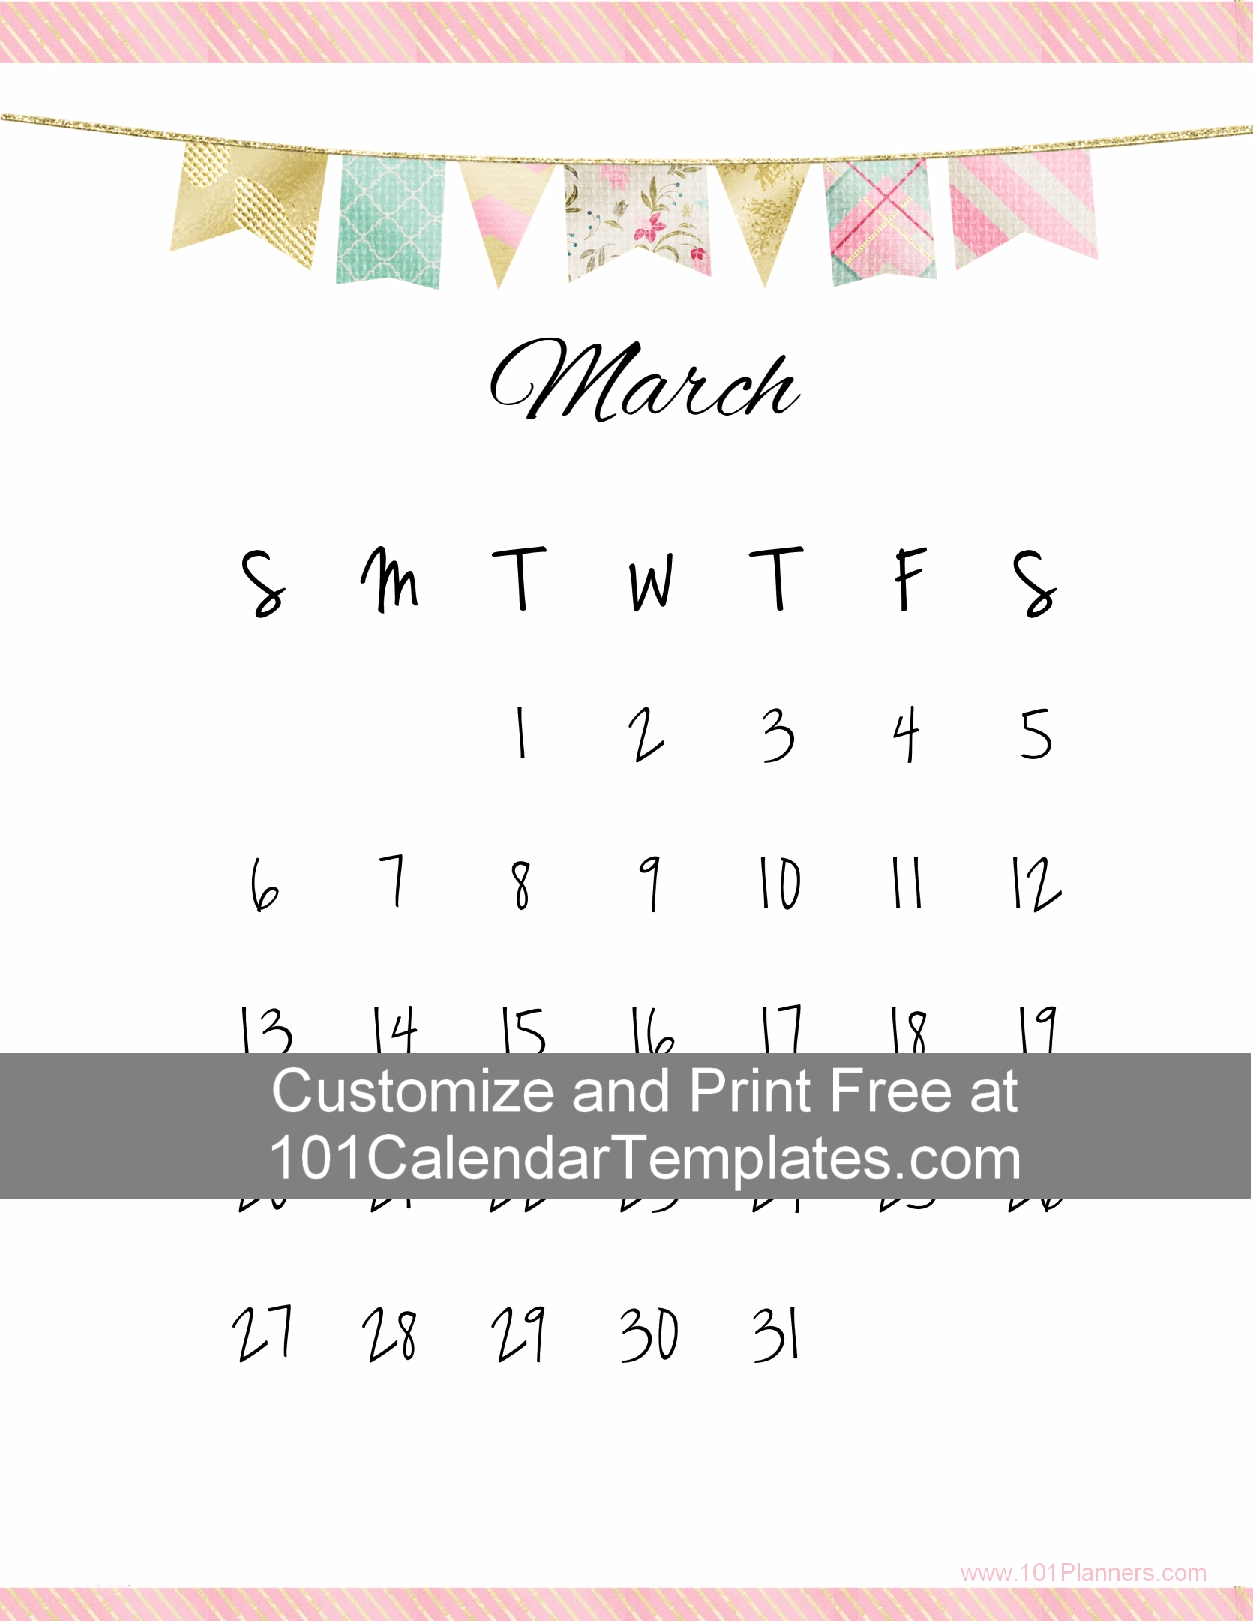 Free Printable Calendar Templates With A Pretty Banner. The Calendar  Template Can Be Customized Online. Instant Download. No Registration  Required.